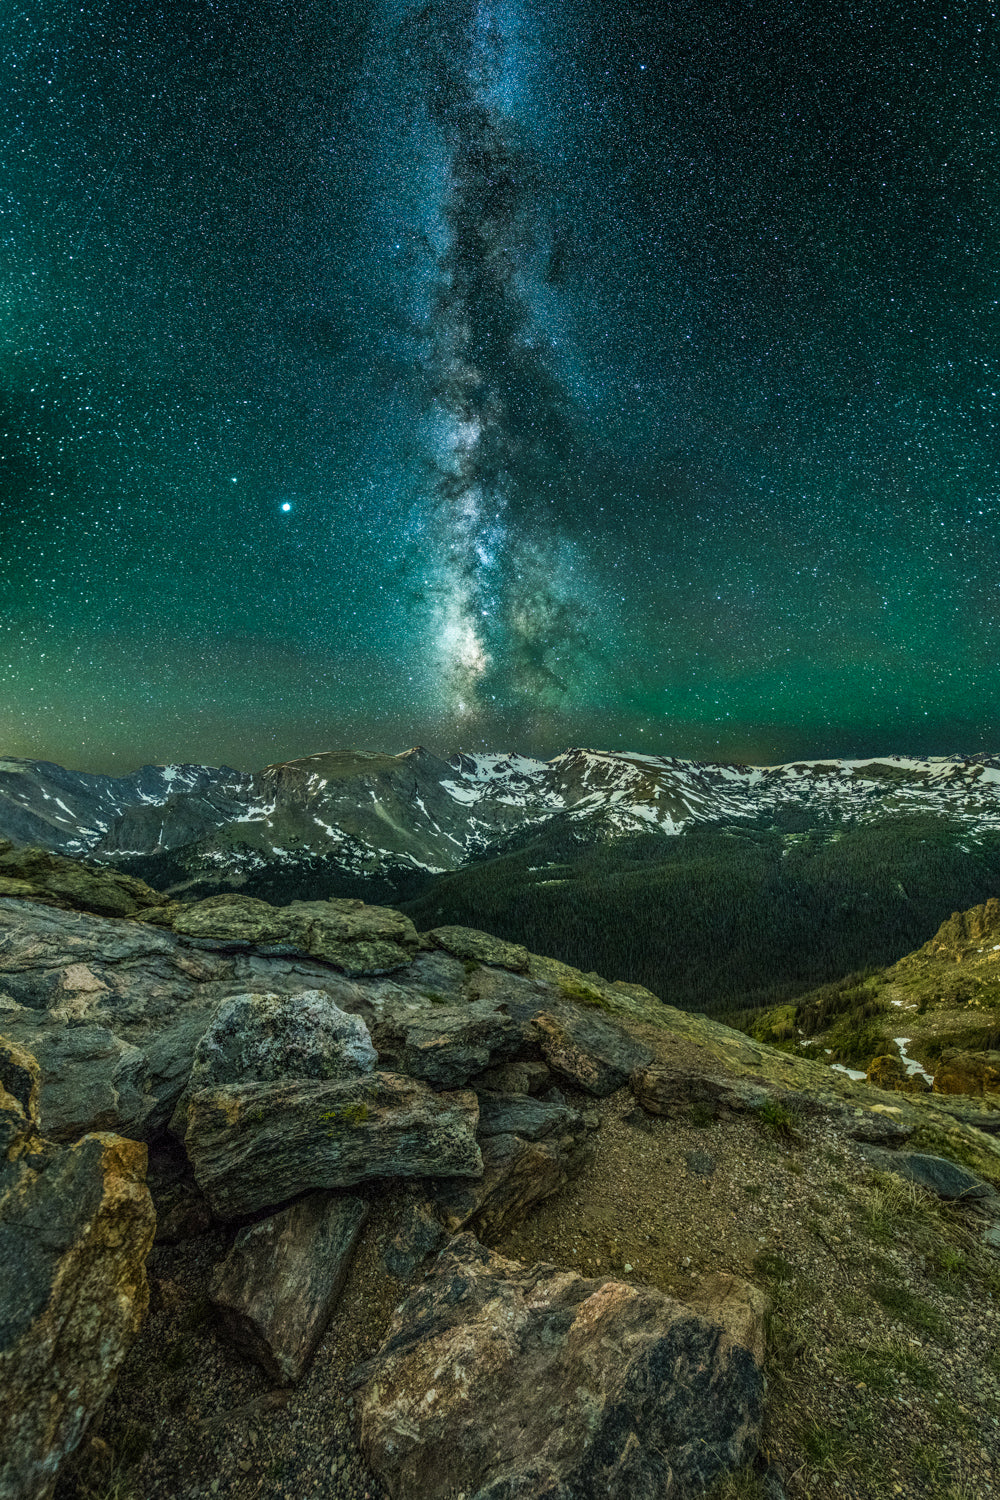 Milky Way Tundra